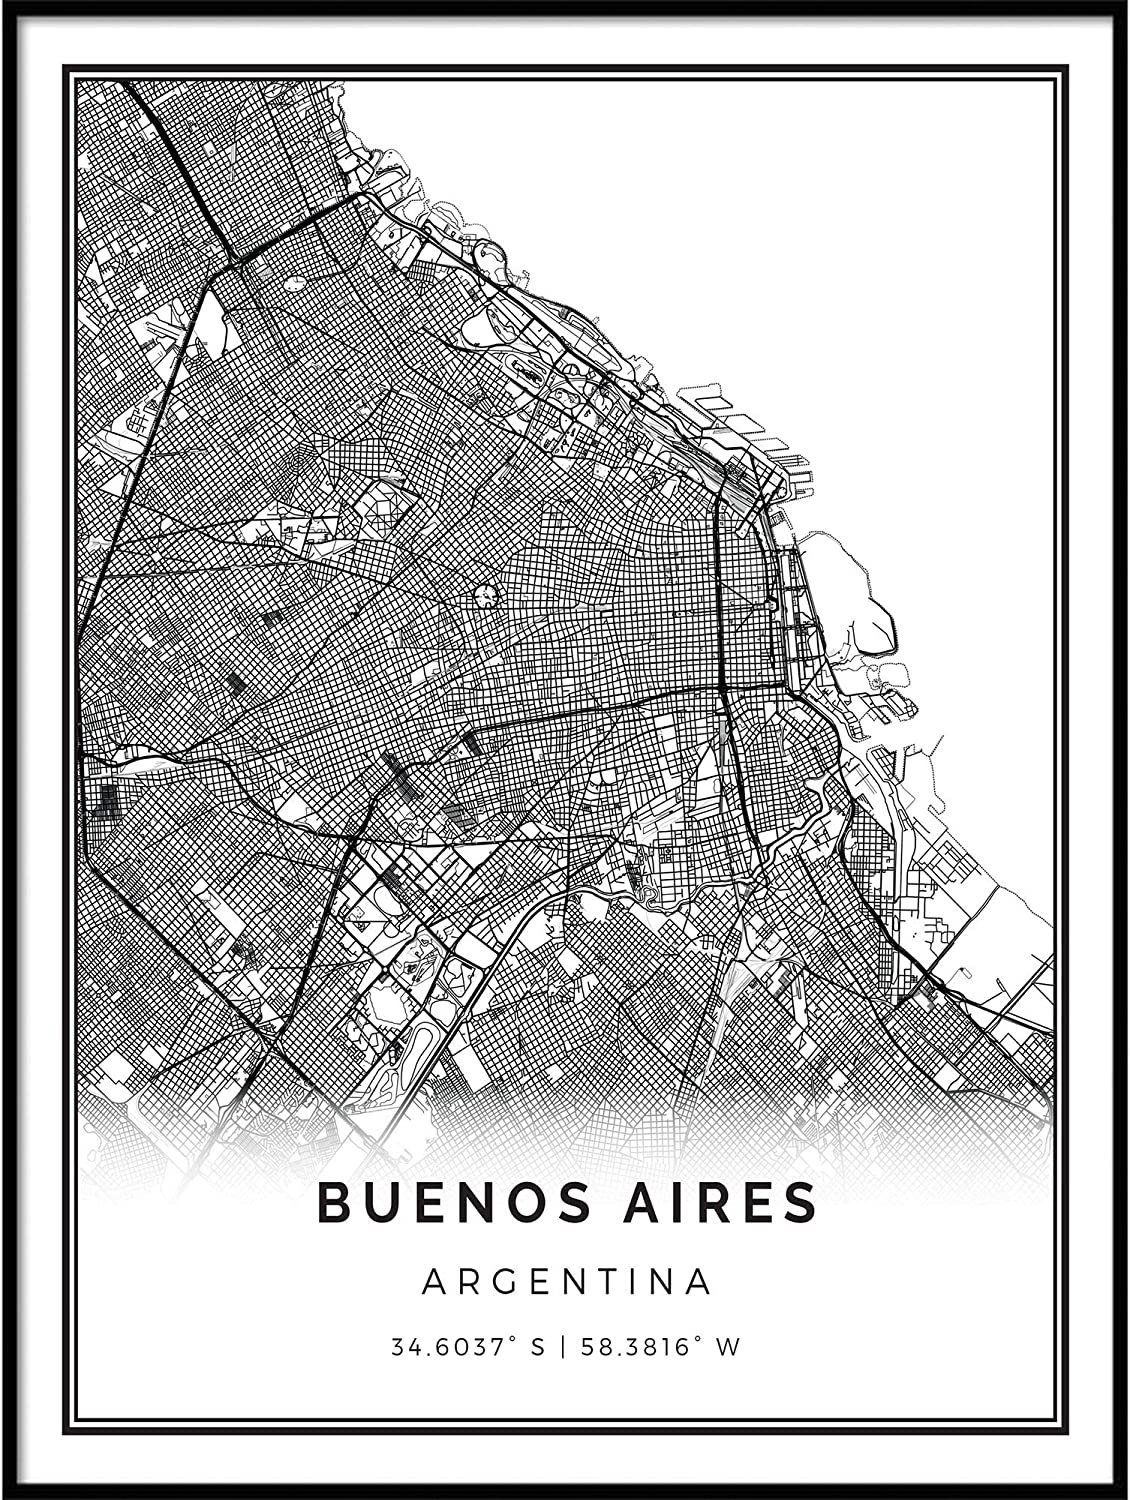 Squareious Buenos Aires map Poster Print | Modern Black and White Wall Art | Scandinavian Home Decor | Argentina City Prints Artwork | Fine Art Posters 16x20